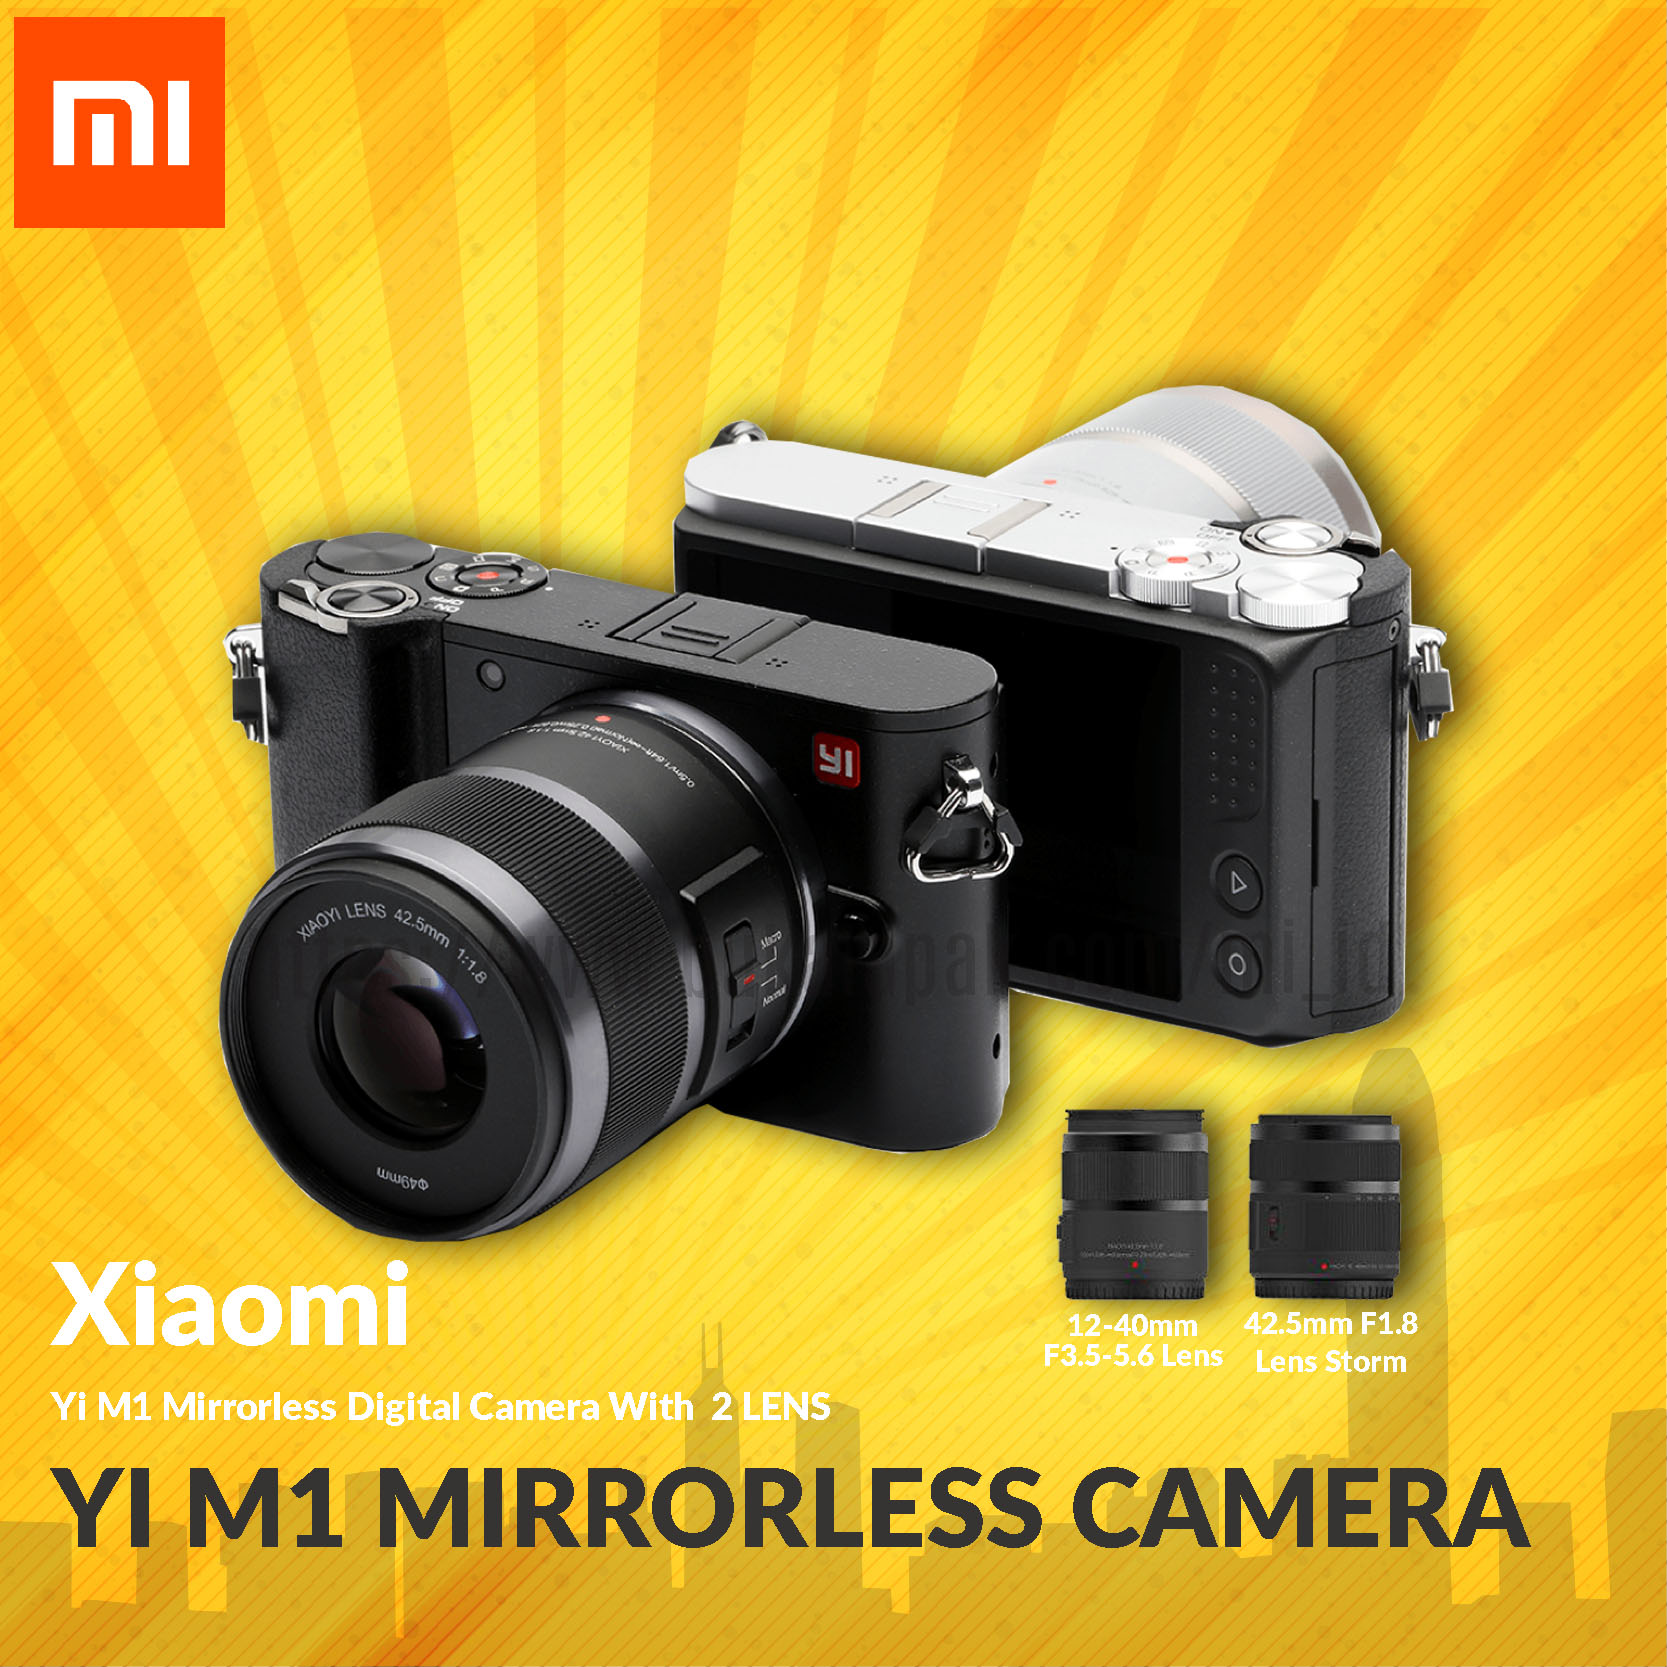 Yi M1 Mirrorless Digital Camera With 12 - 40mm F3.5 - 5.6 Lens And 42.5mm - Blanja.com